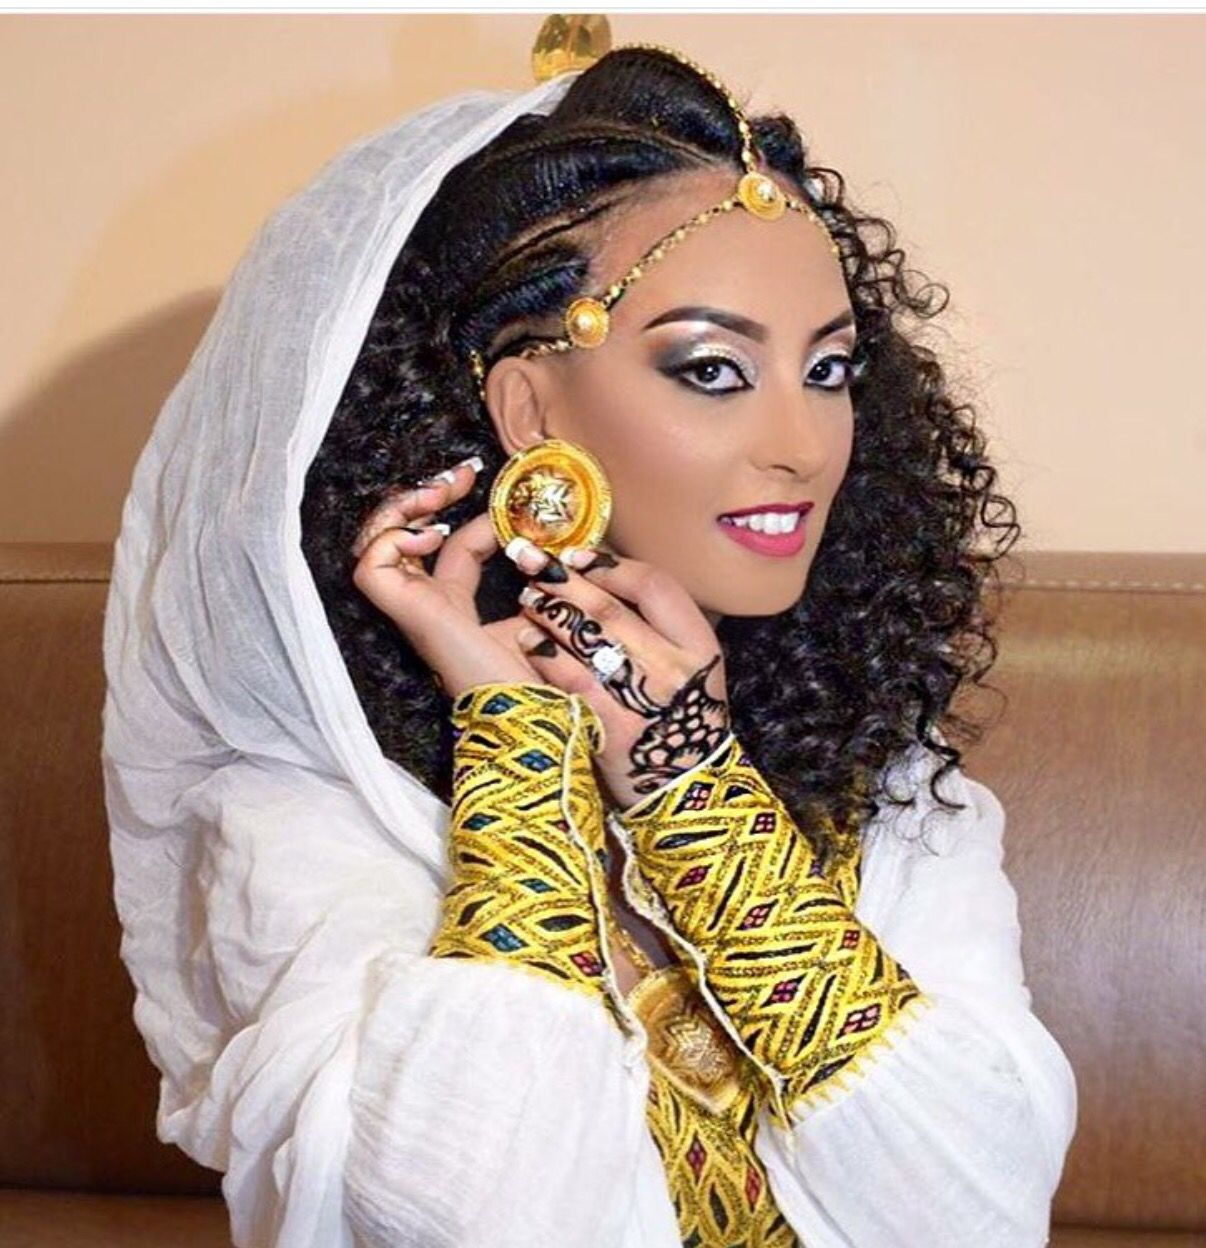 Pin by Emni Emnet on Ethiopia | Pinterest | Wedding costumes ...